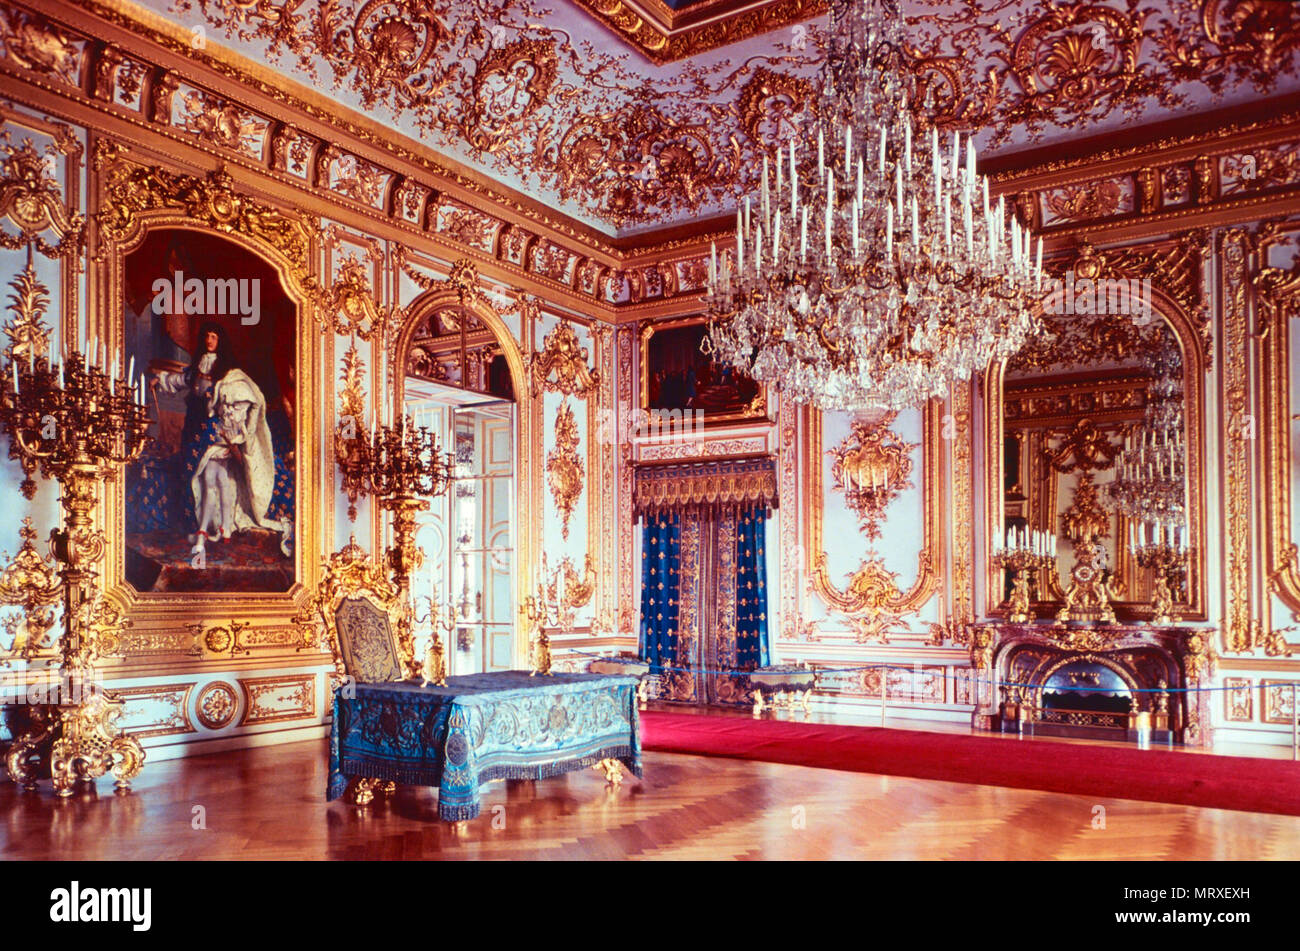 Council Room,Herrenchiemsee,Germany - Stock Image